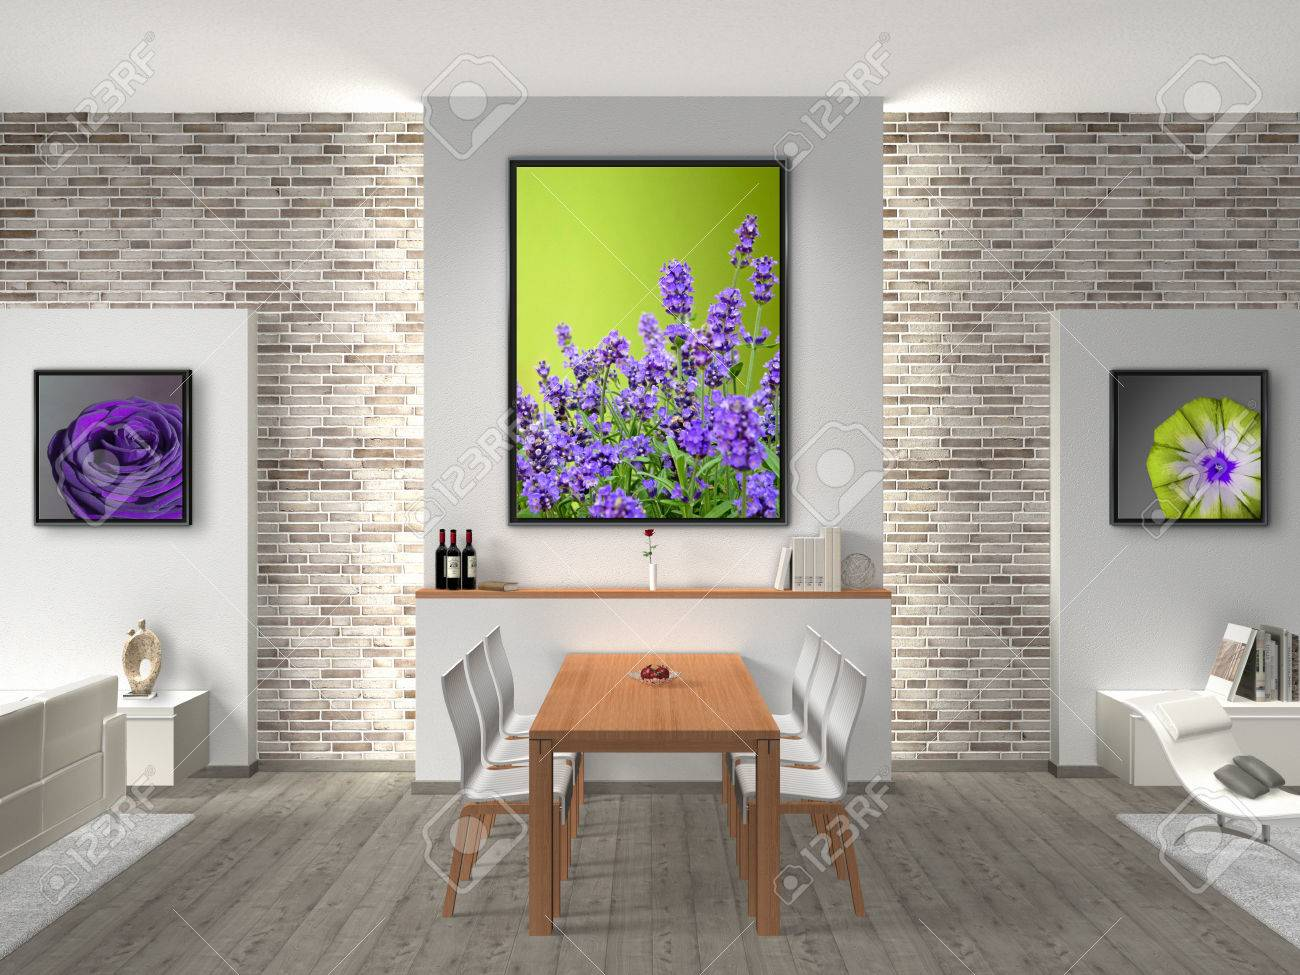 FICTITIOUS Interior Of A Modern Dining Room The Photos In Frames Can Easily Be Exchanged By You Labels On Bottles And Book Covers Are